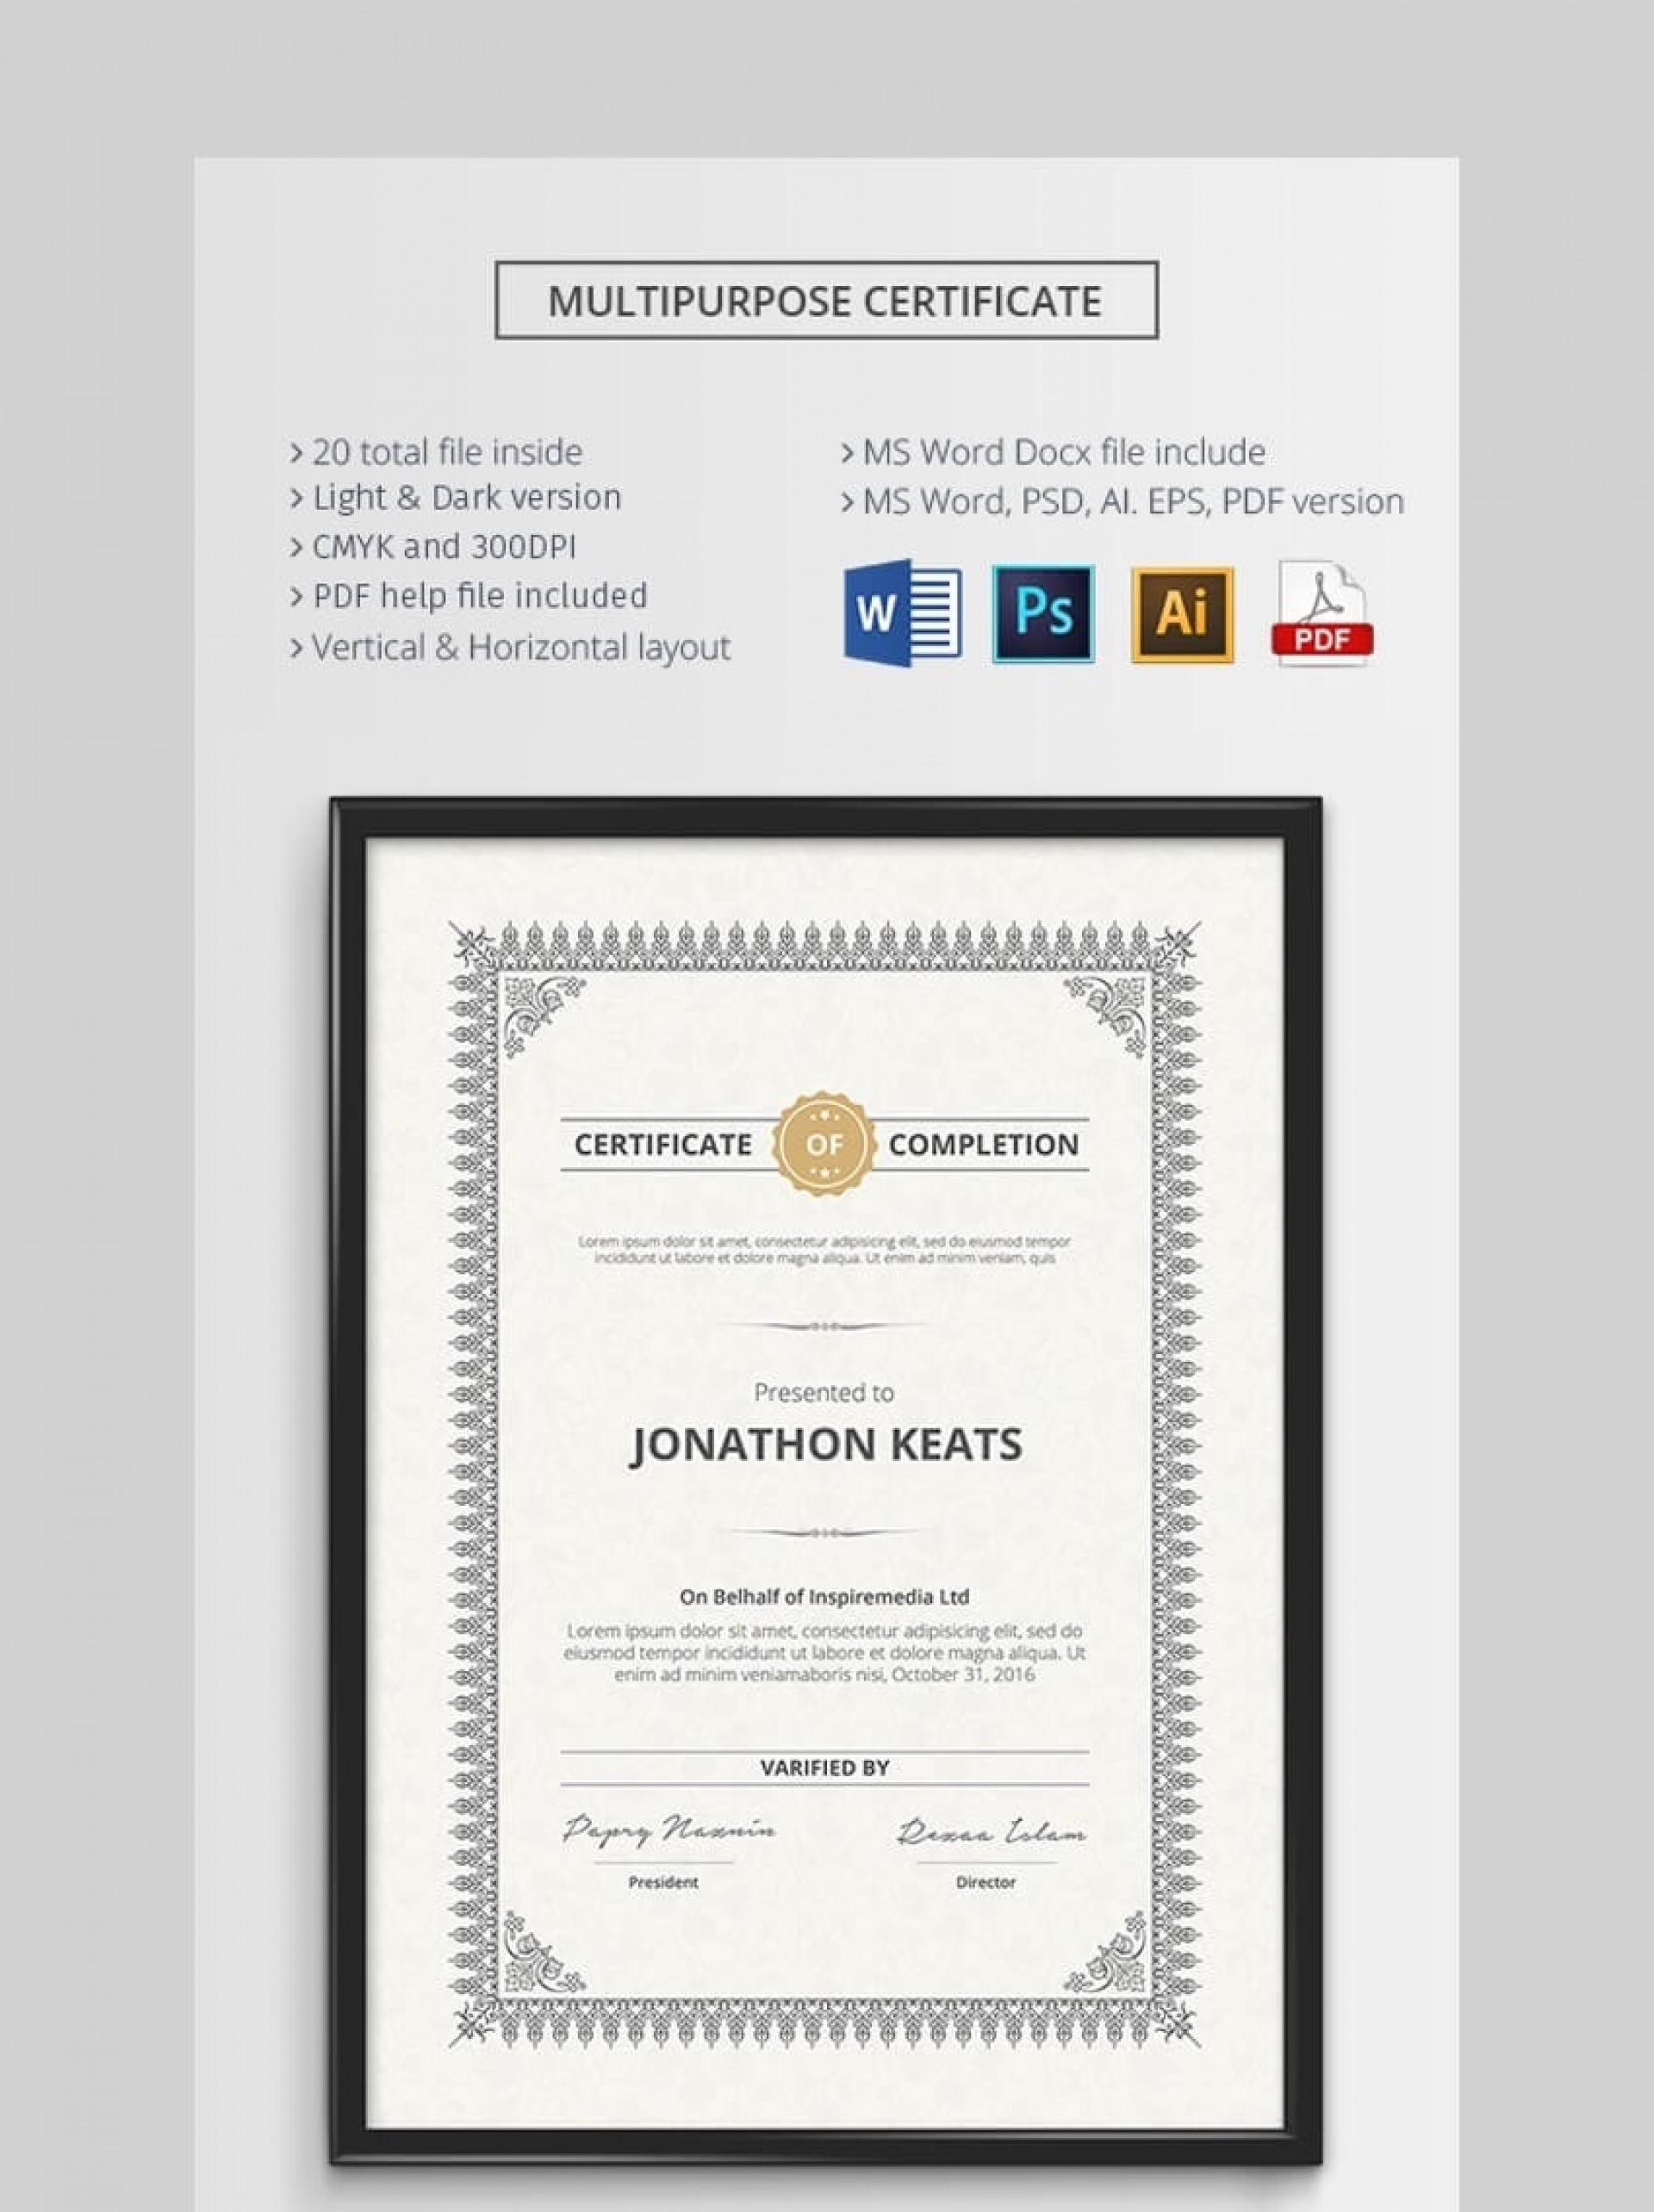 002 Awful Microsoft Word Certificate Template Sample  2003 Award M Appreciation Of Authenticity1920